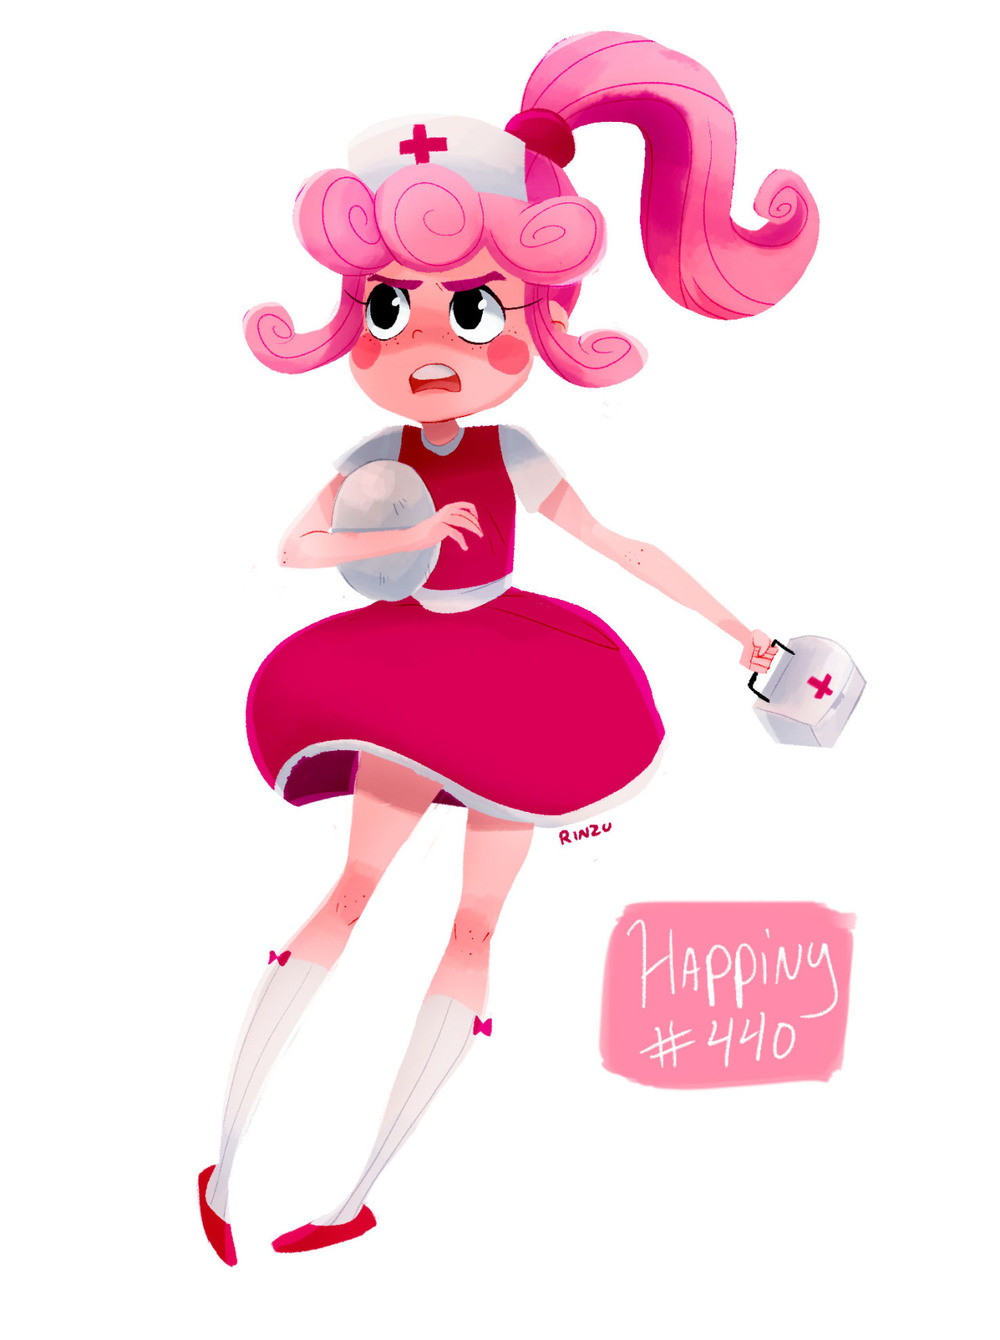 Happiny Gijinka